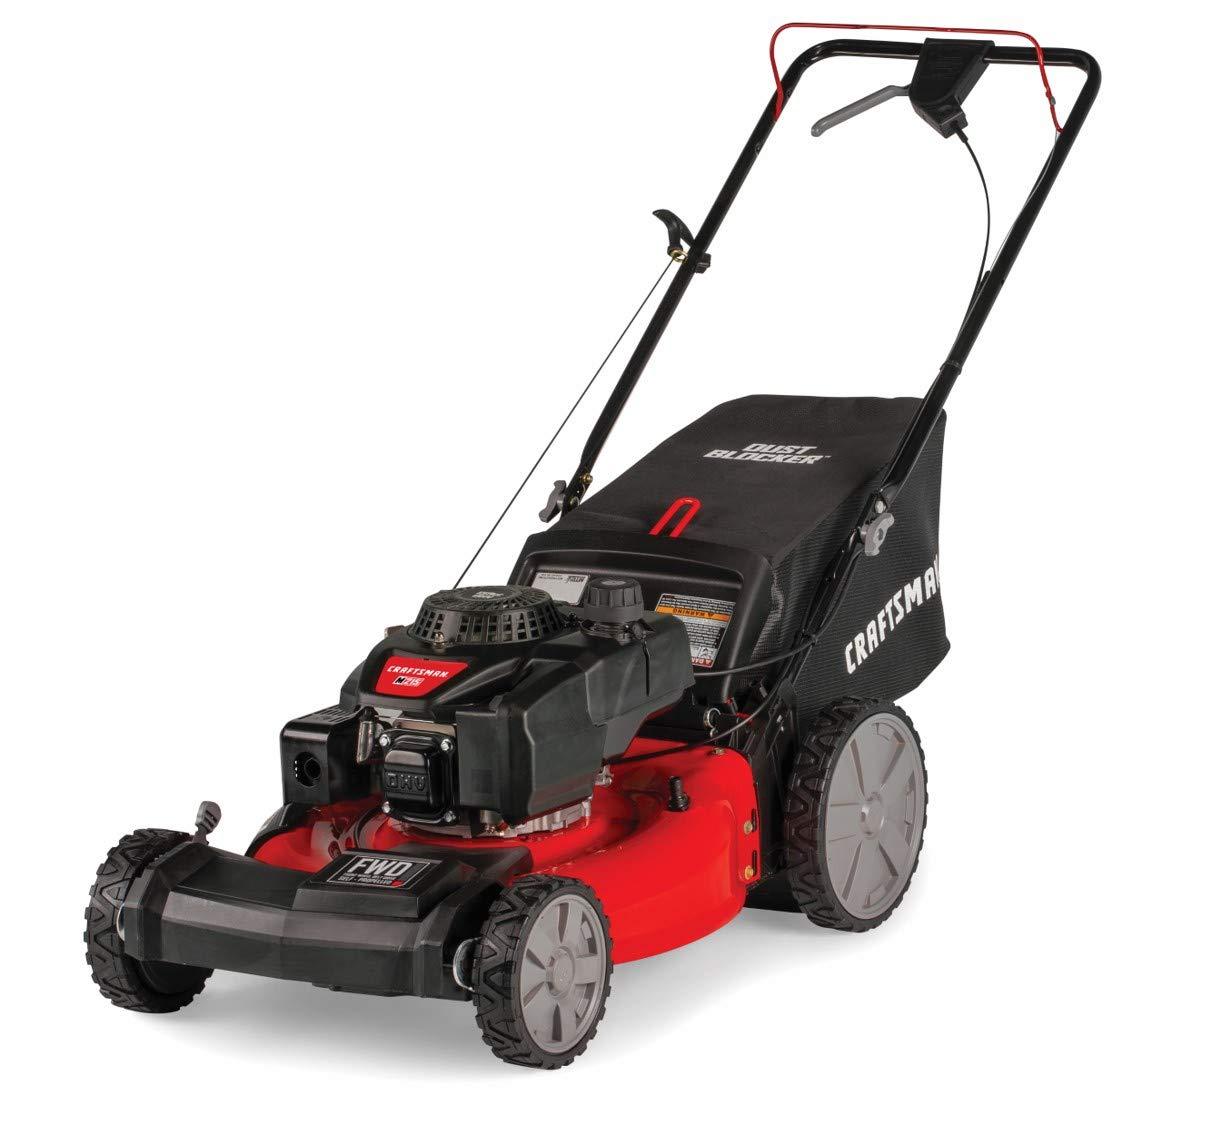 Craftsman M215 159cc 21-Inch 3-in-1 High-Wheeled FWD Self-Propelled Gas Powered Lawn Mower with Bagger by Craftsman